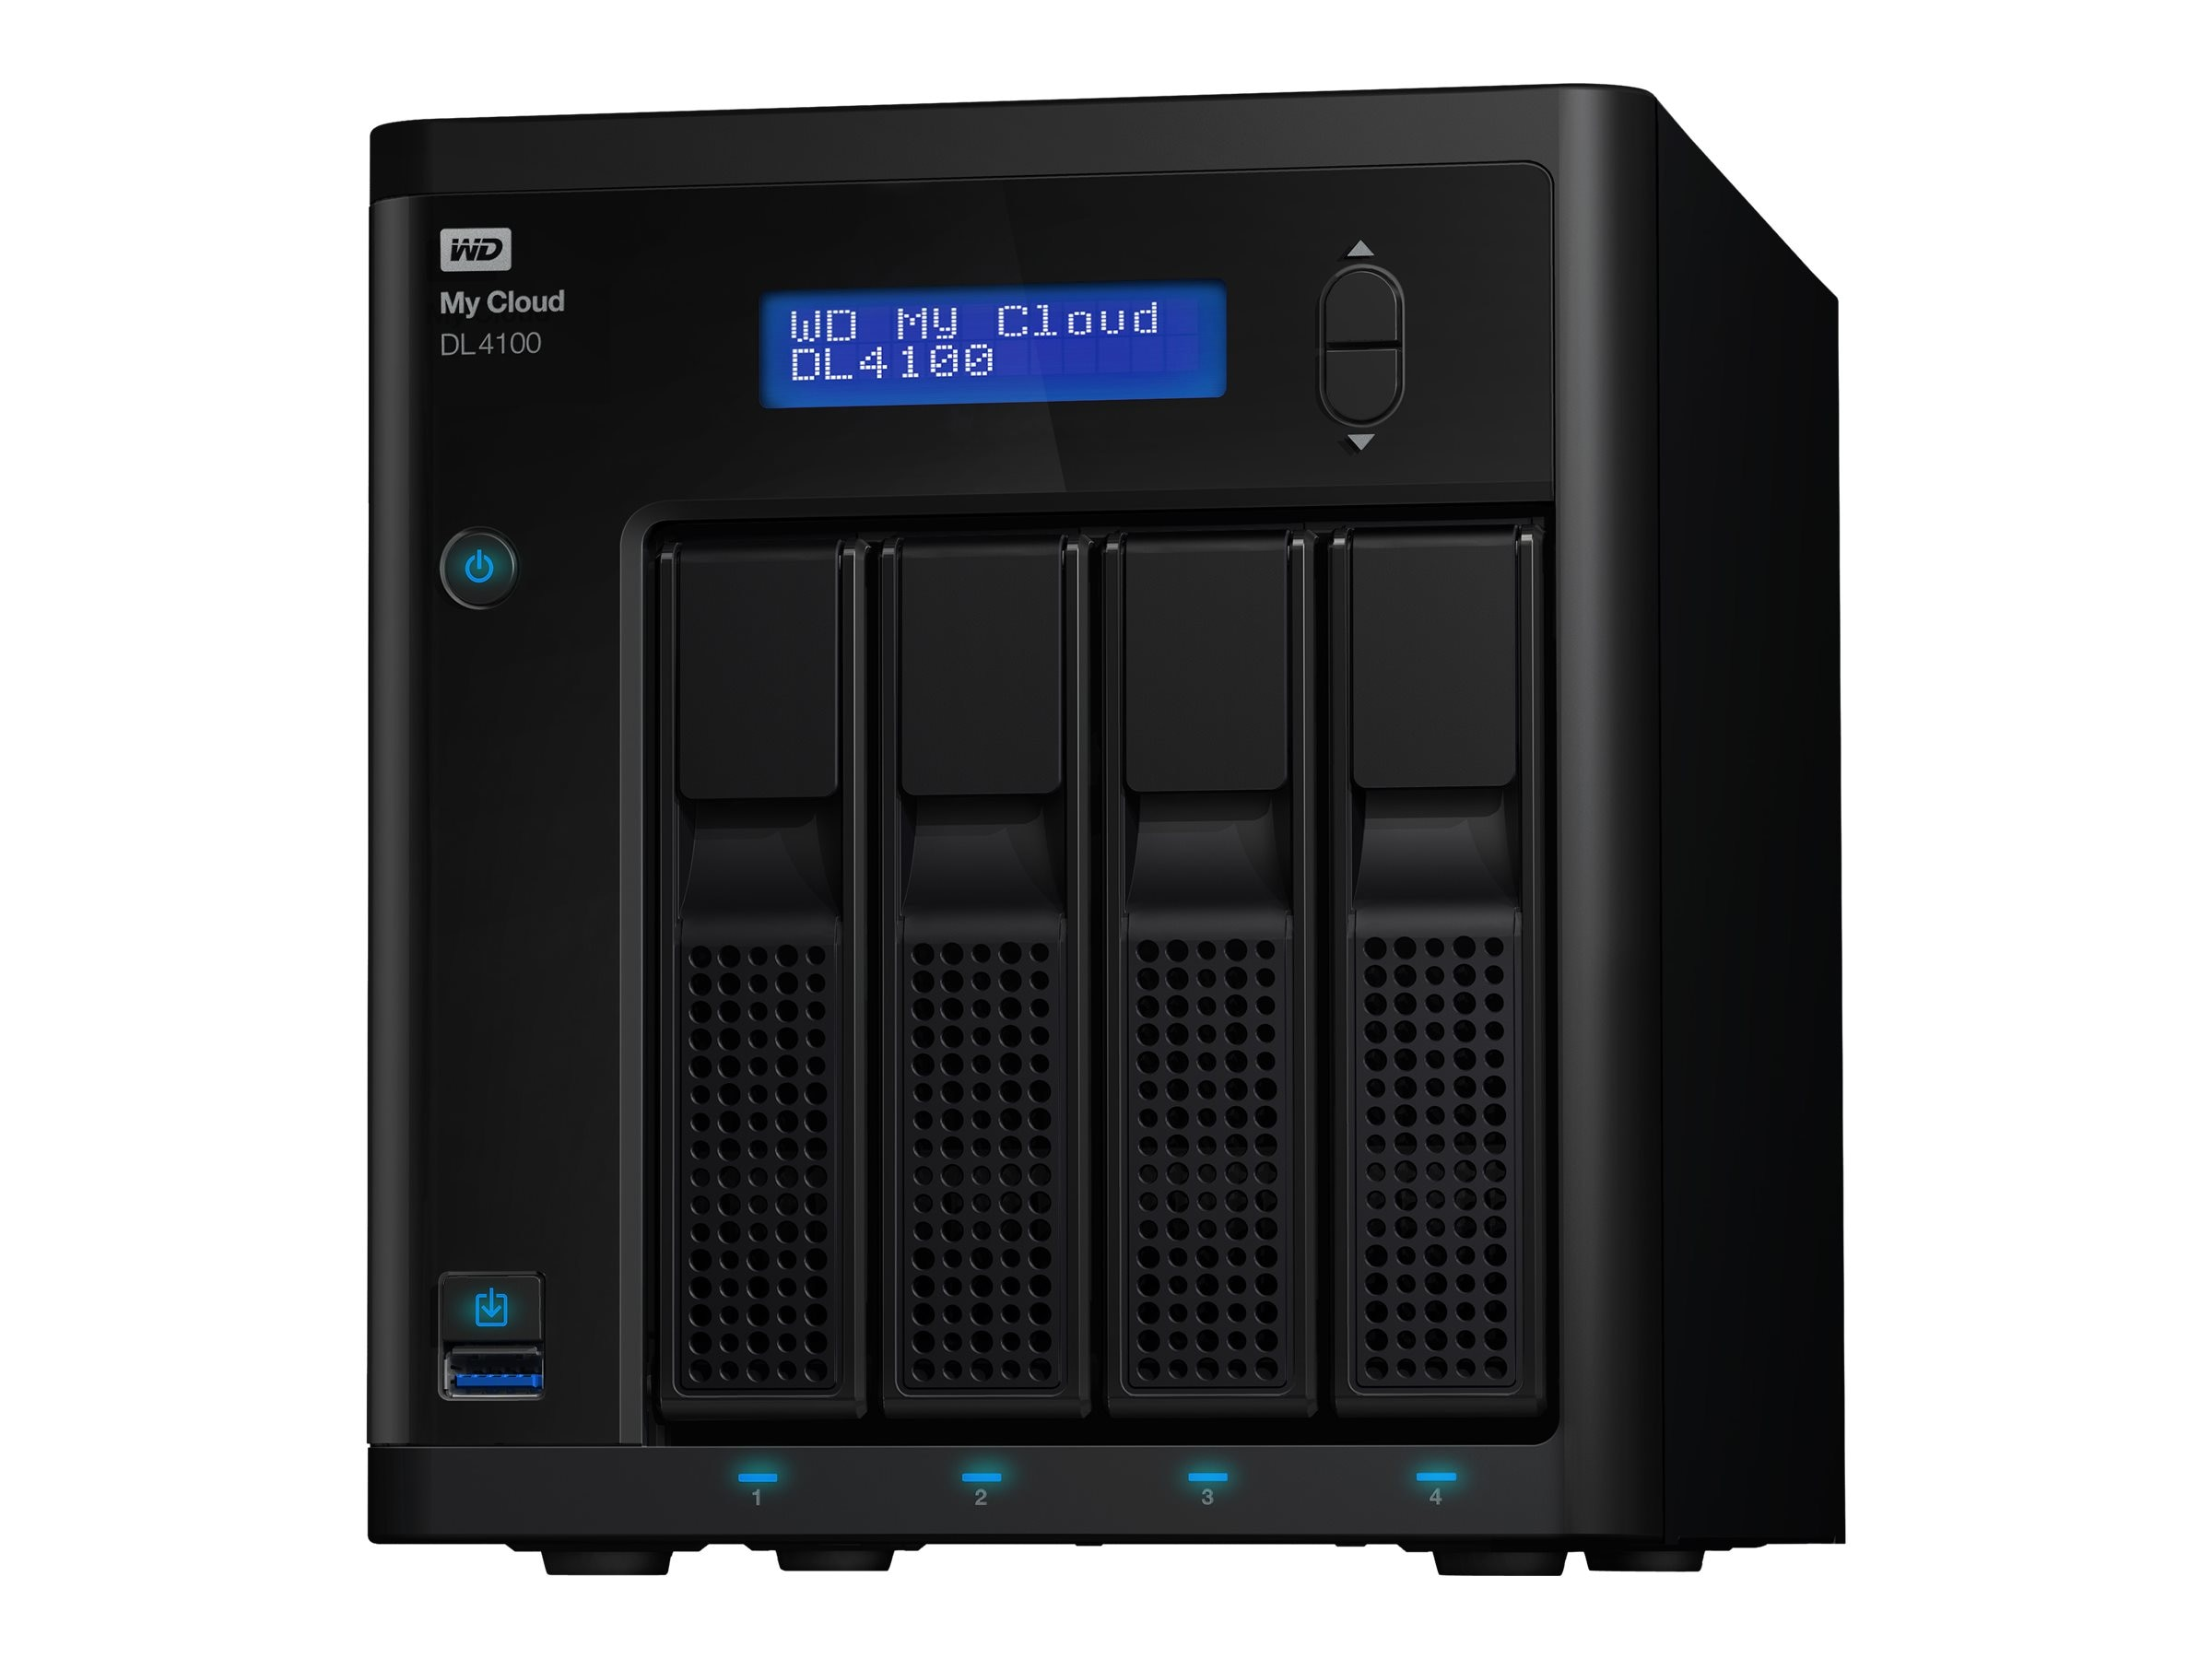 WD My Cloud DL4100 Network Attached Storage - Diskless, WDBNEZ0000NBK-NESN, 18442755, Network Attached Storage